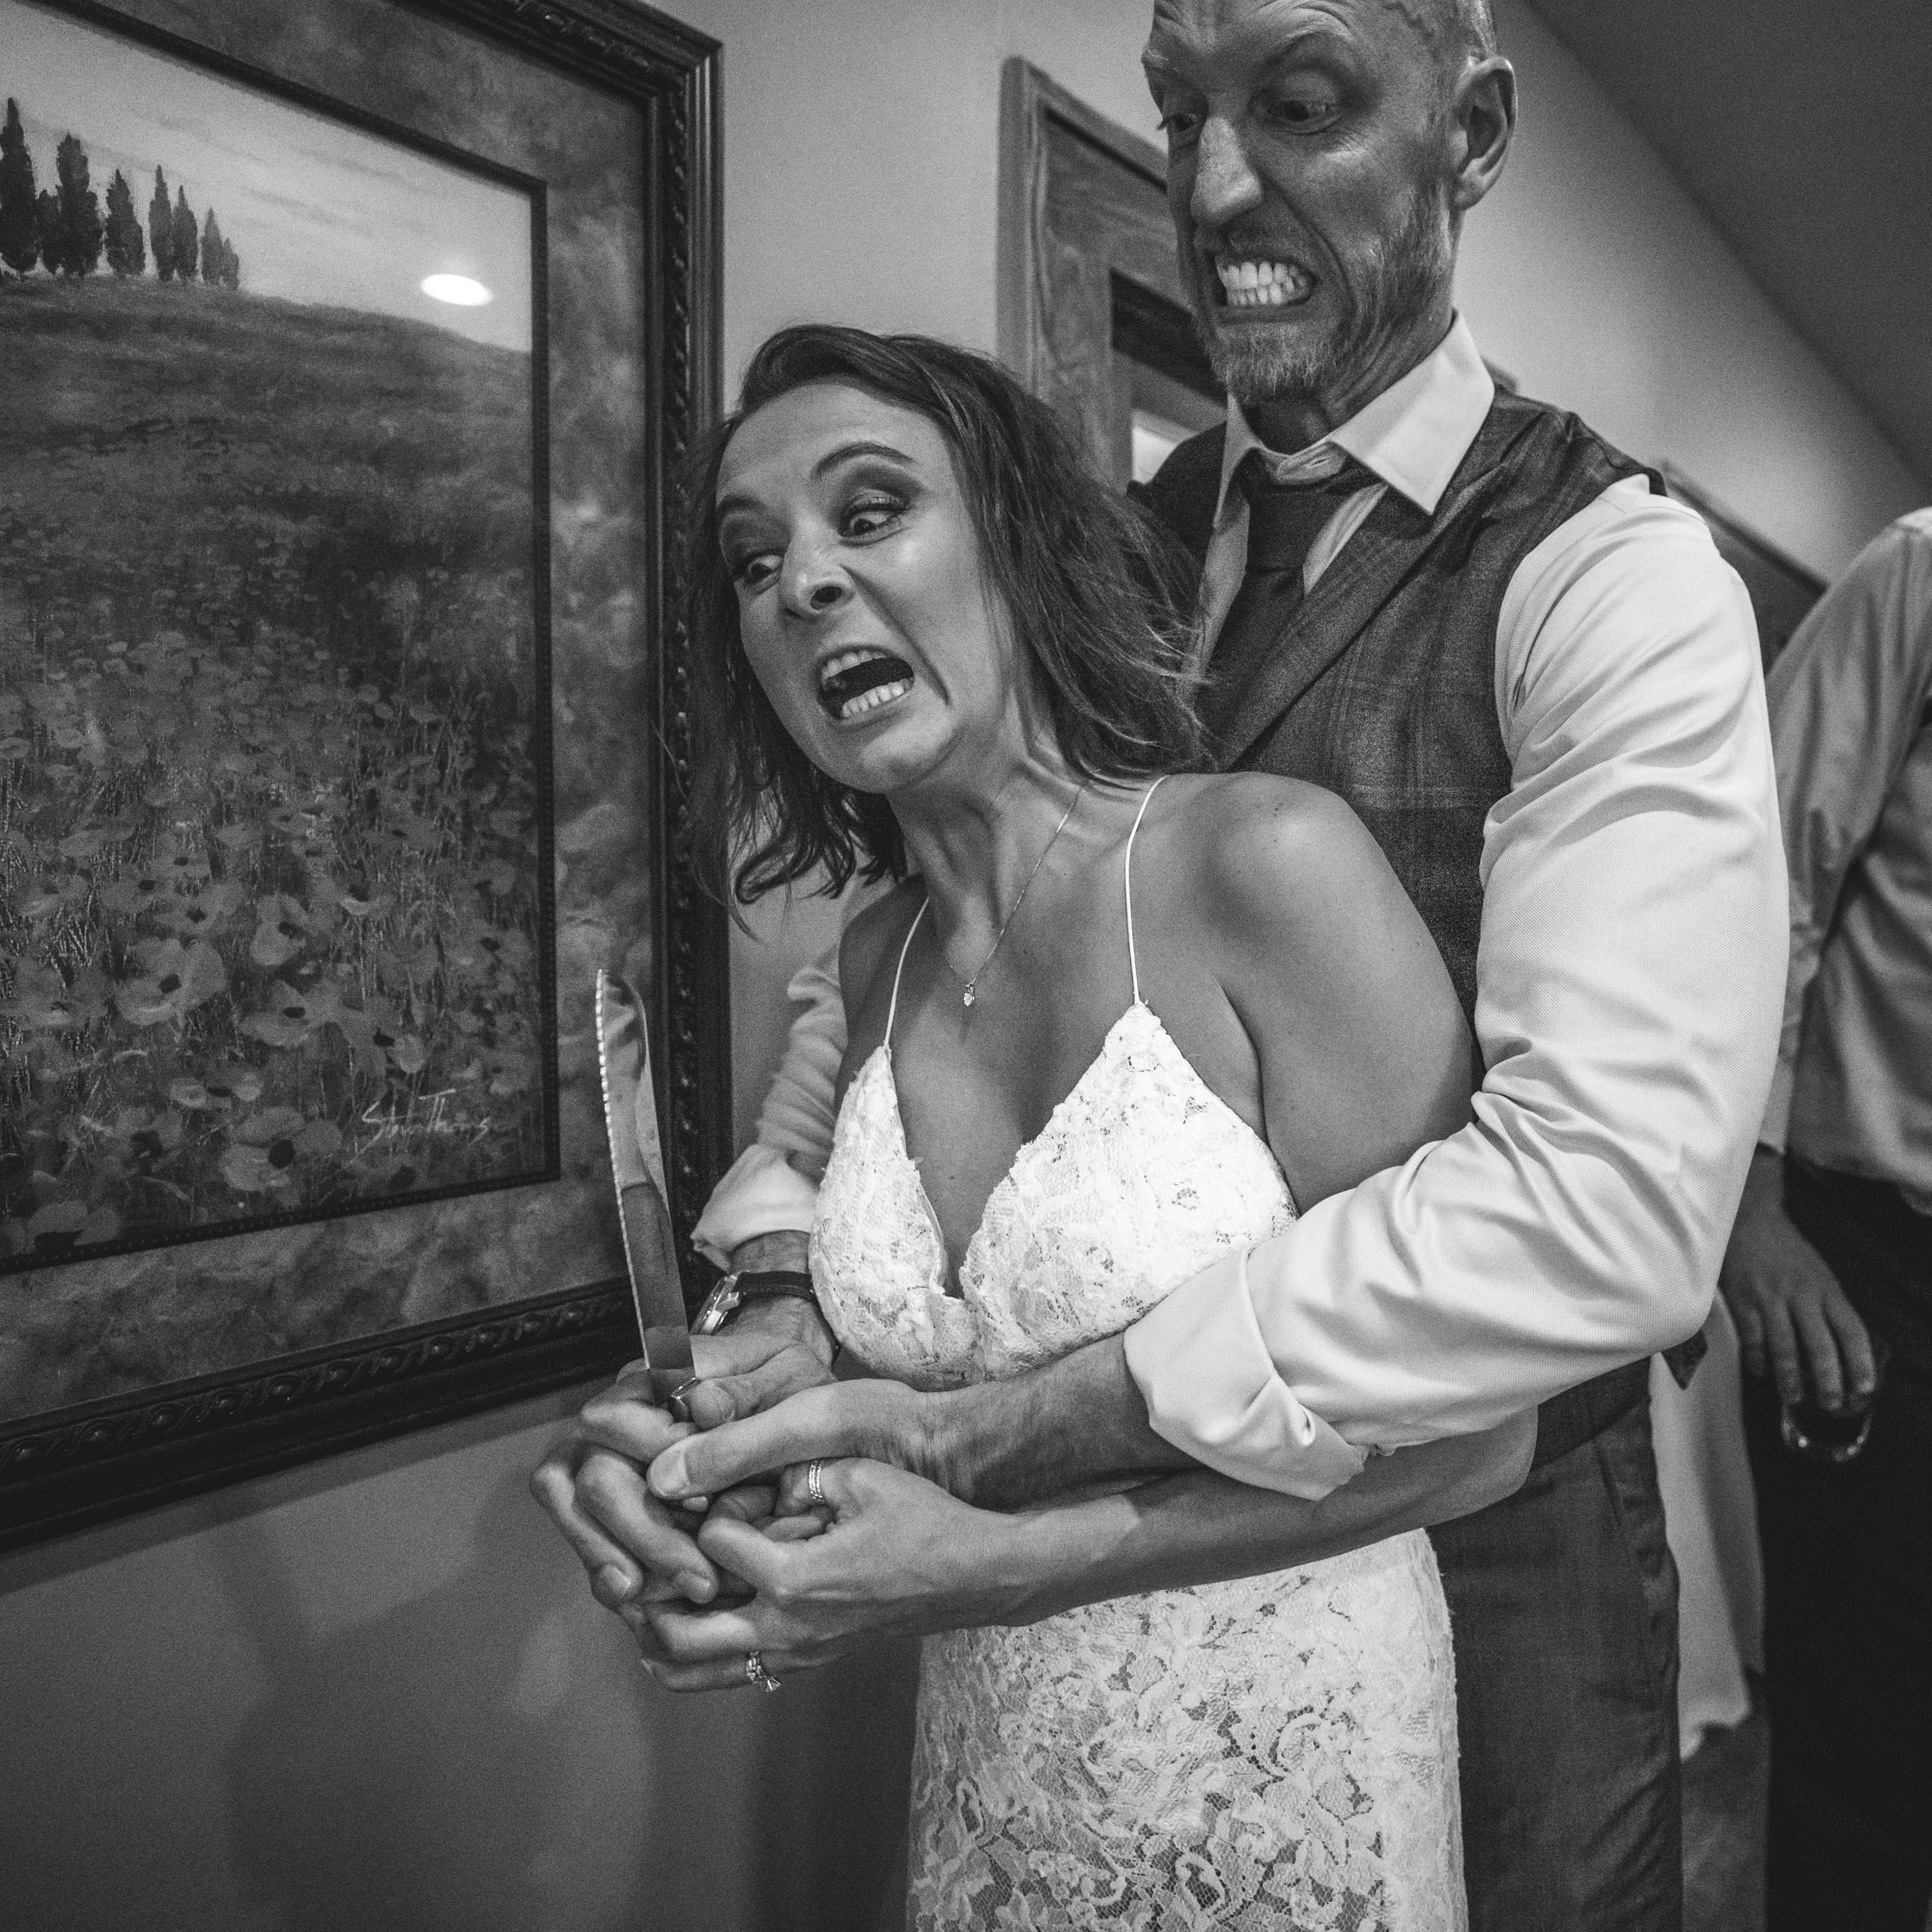 Black and white photo of a bride and groom messing around as they cut they cake, pretending they're going to use the knife to stab each other